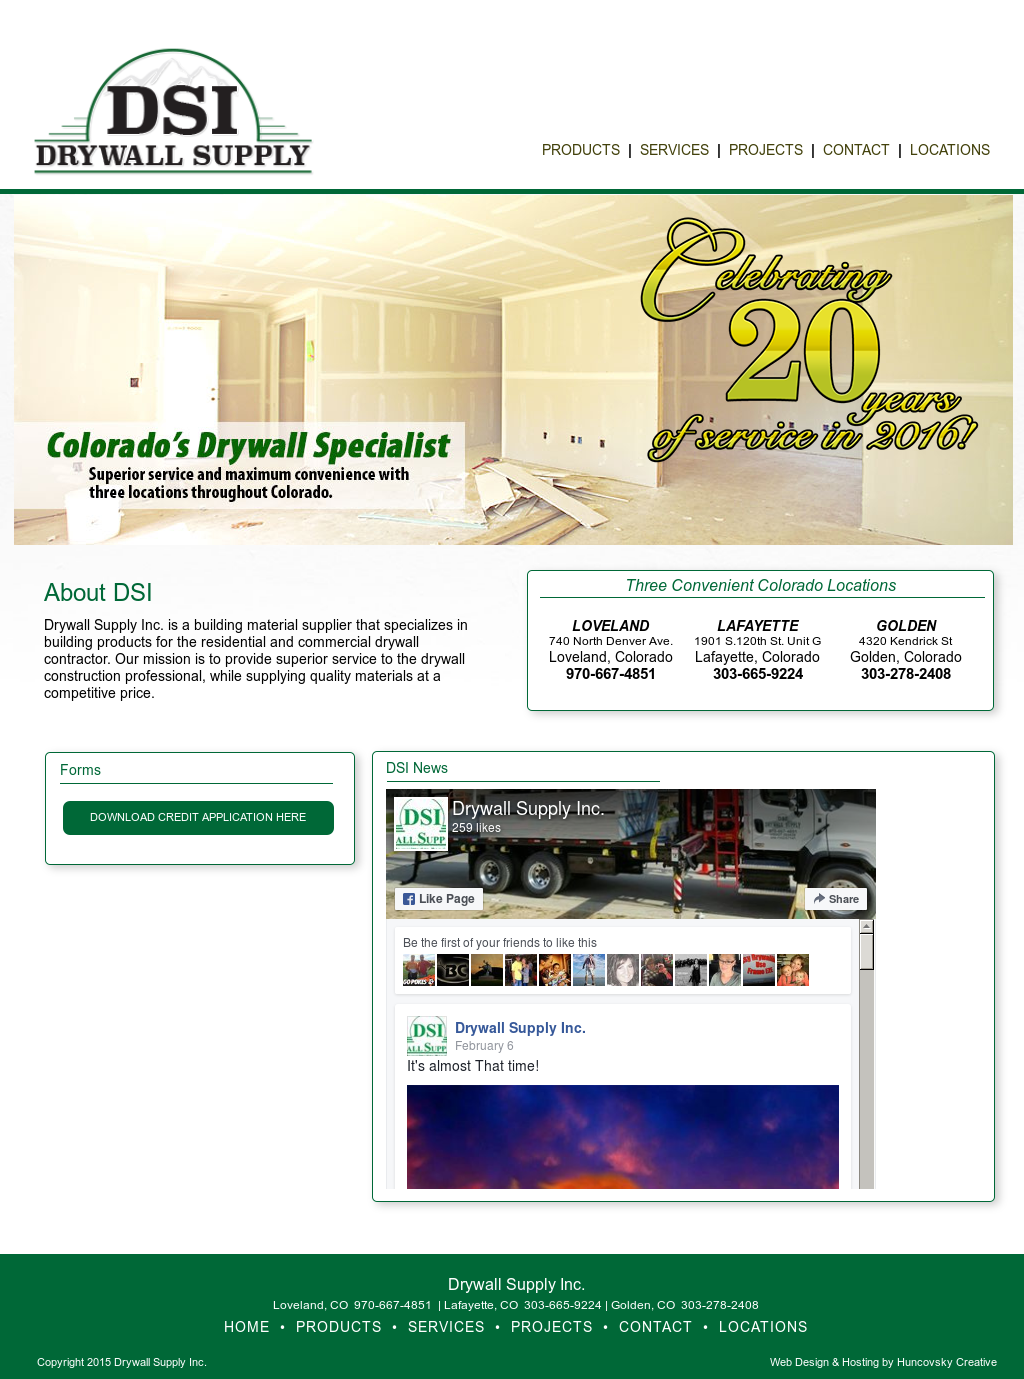 Drywall Supply Competitors, Revenue and Employees - Owler Company